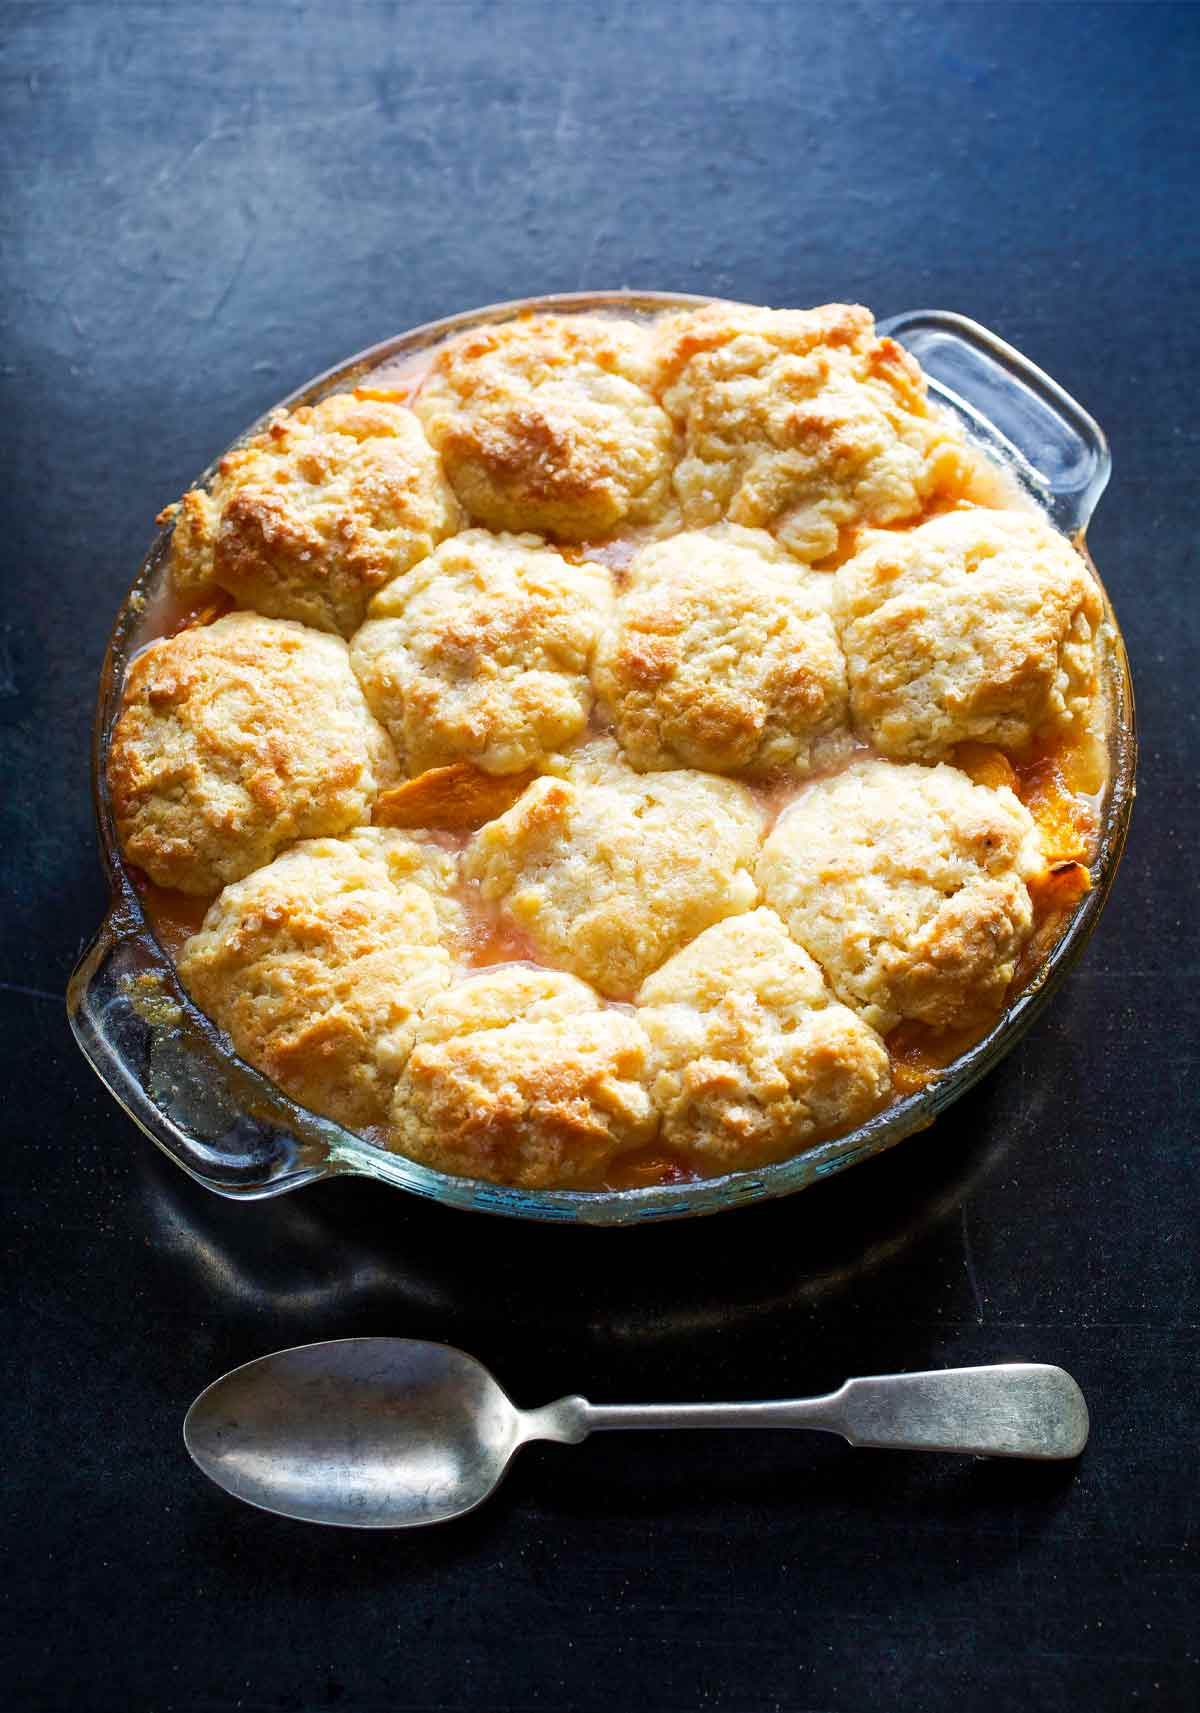 A round glass baking dish filled with peach nectarine cobbler and a spoon on the side.